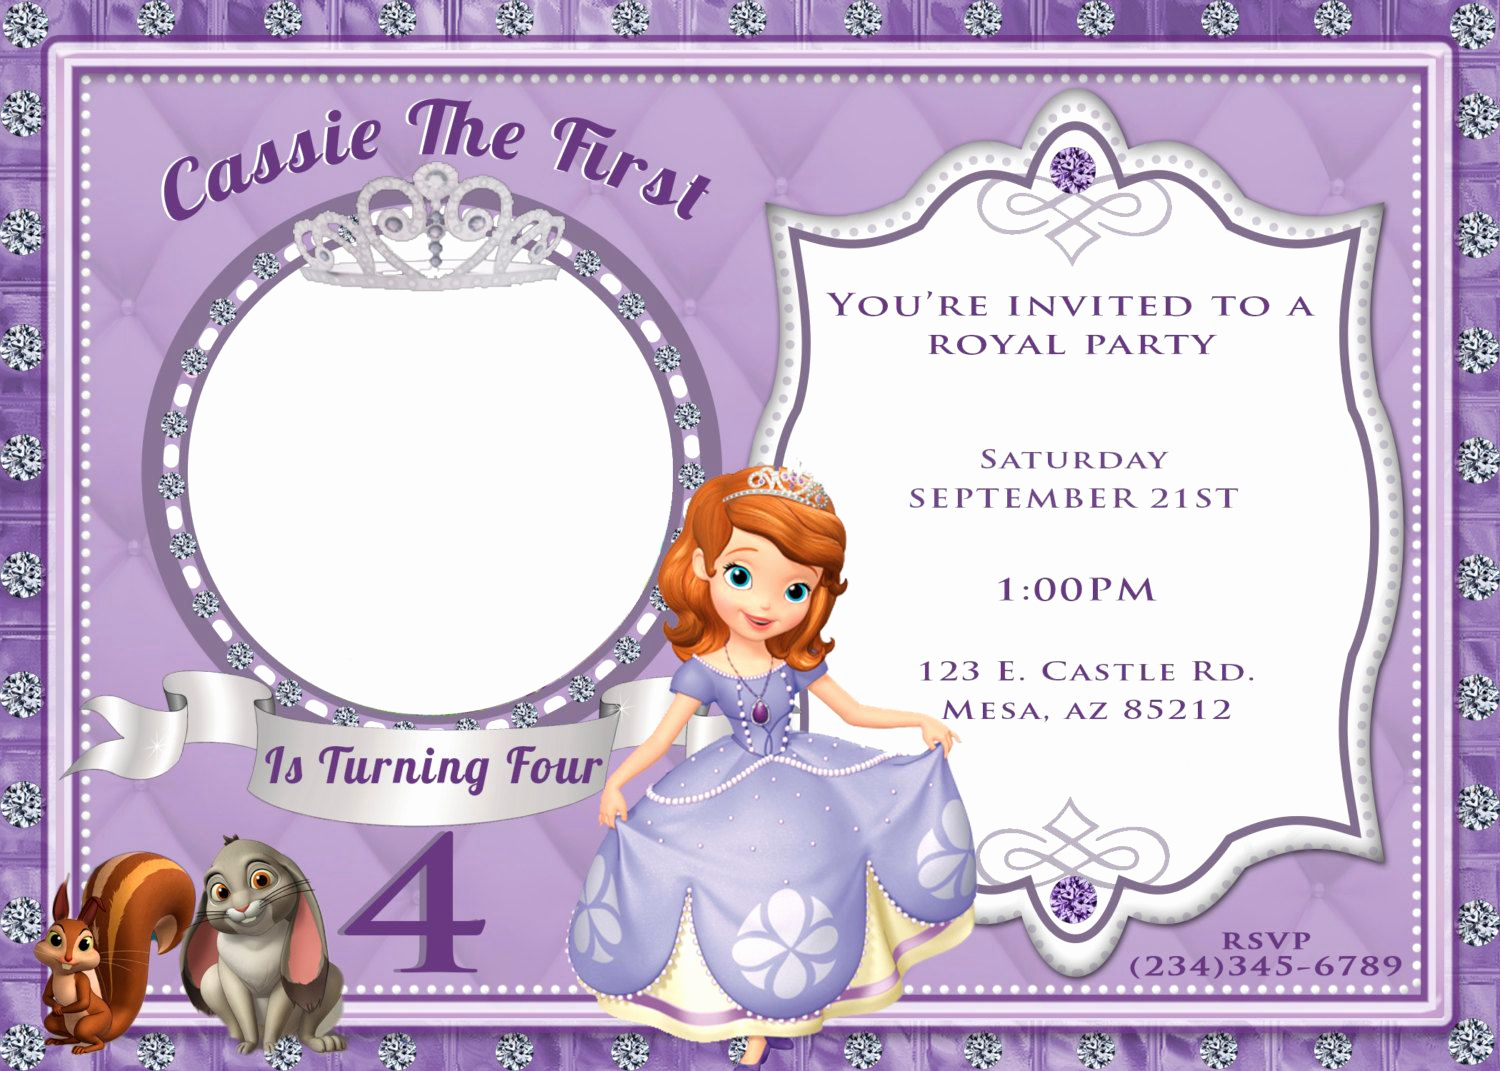 Sofia the First Invitation Template Unique sofia the First Invitation by 4evrdesignsbykristyn On Etsy